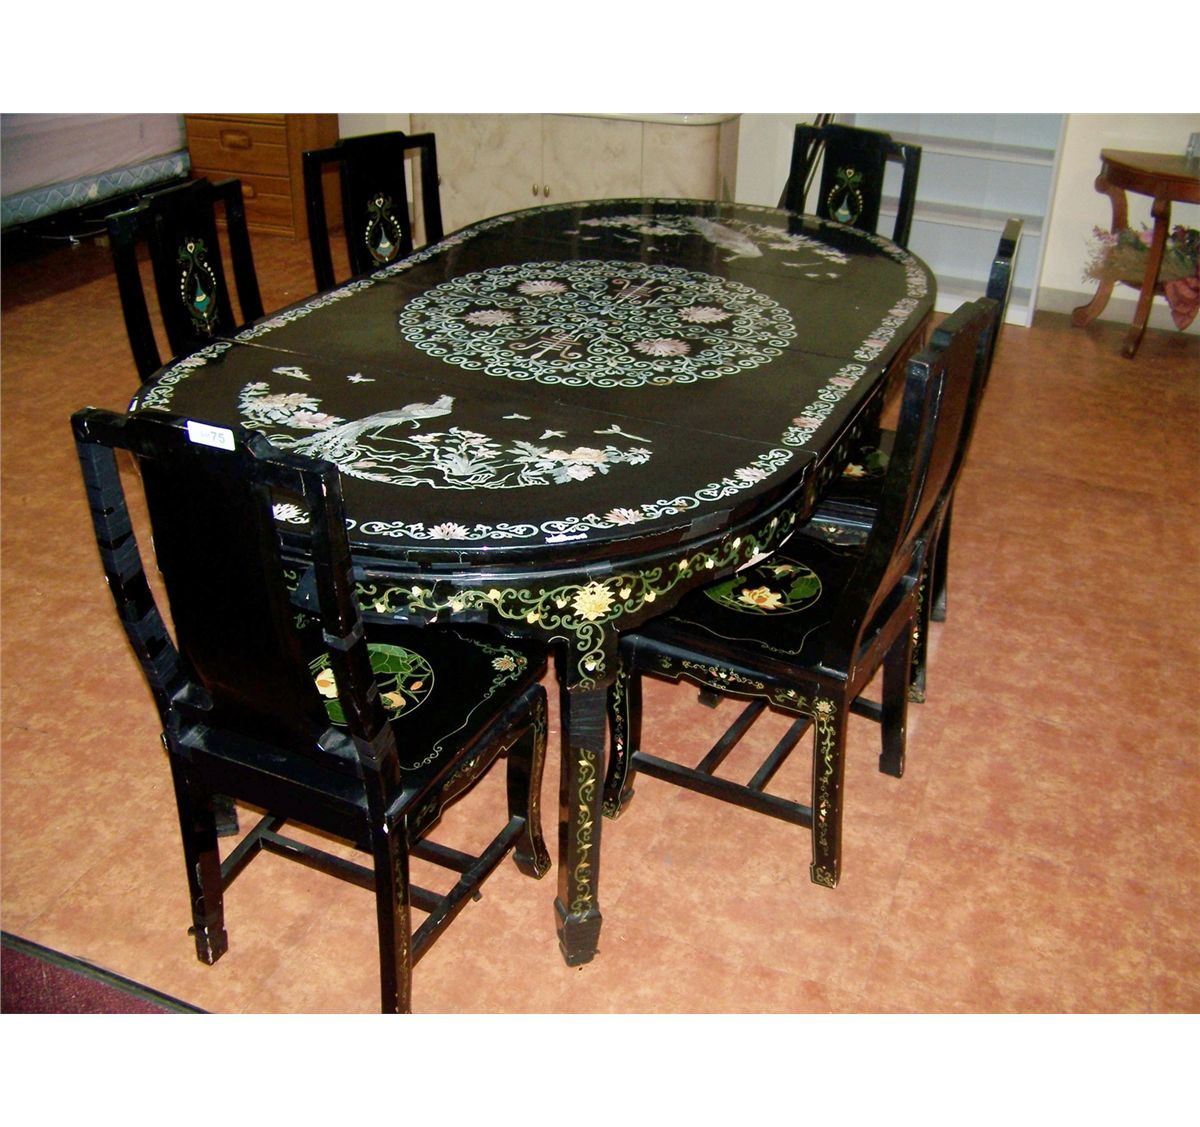 Image 1 : VINTAGE MOTHER OF PEARL INLAY CHINESE DINING TABLE U0026 SIX CHAIRS  ...